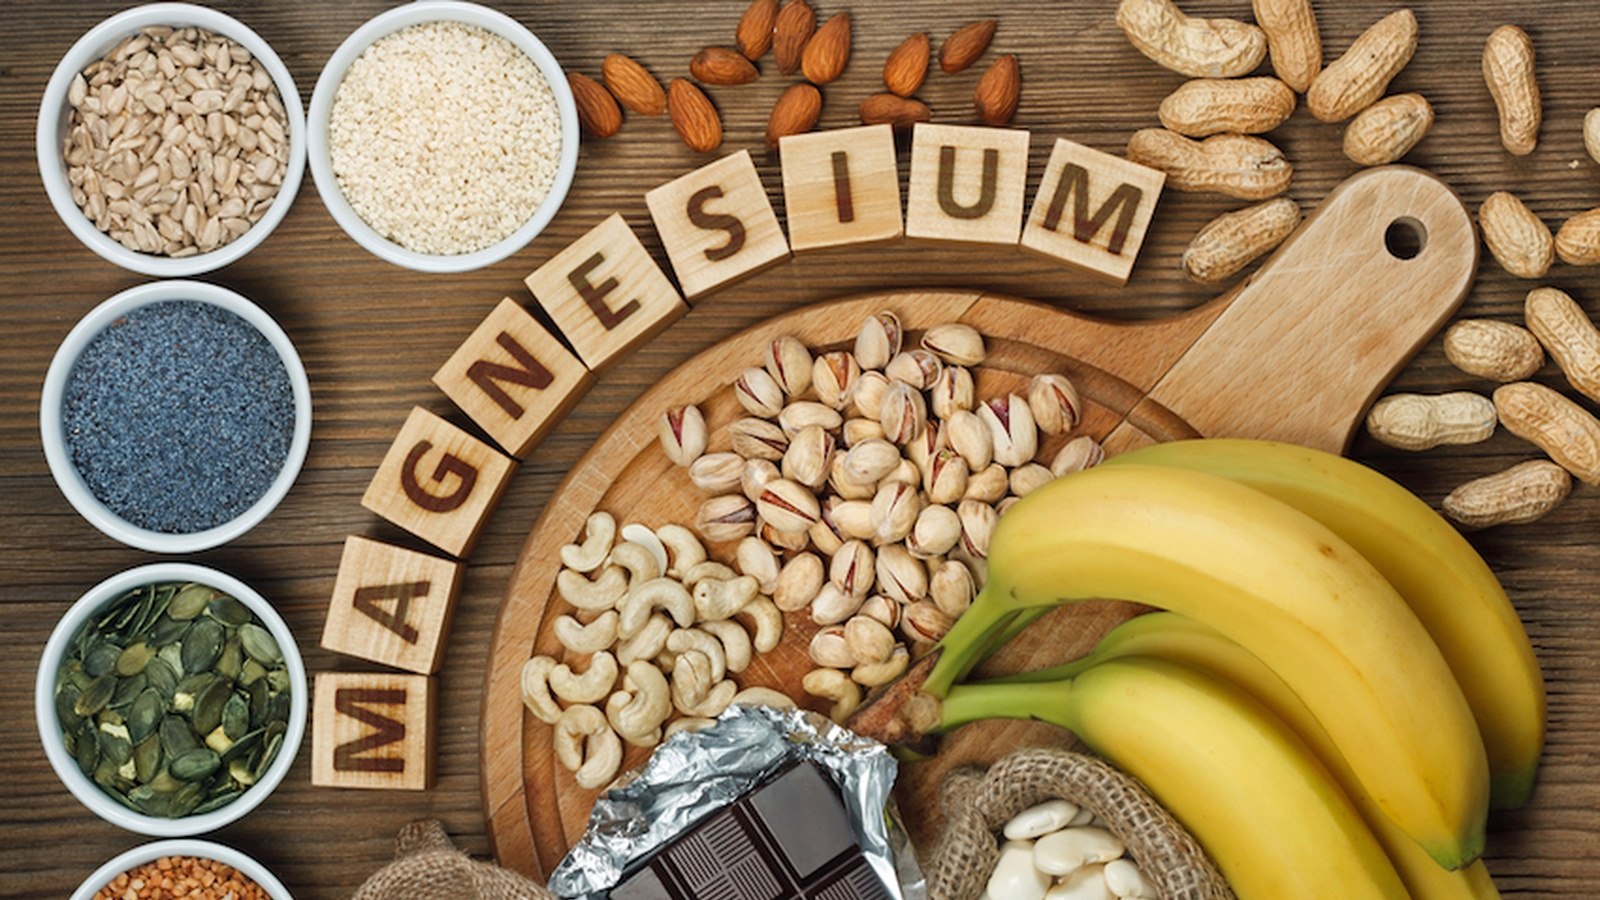 7 Signs You're Not Getting Enough Magnesium